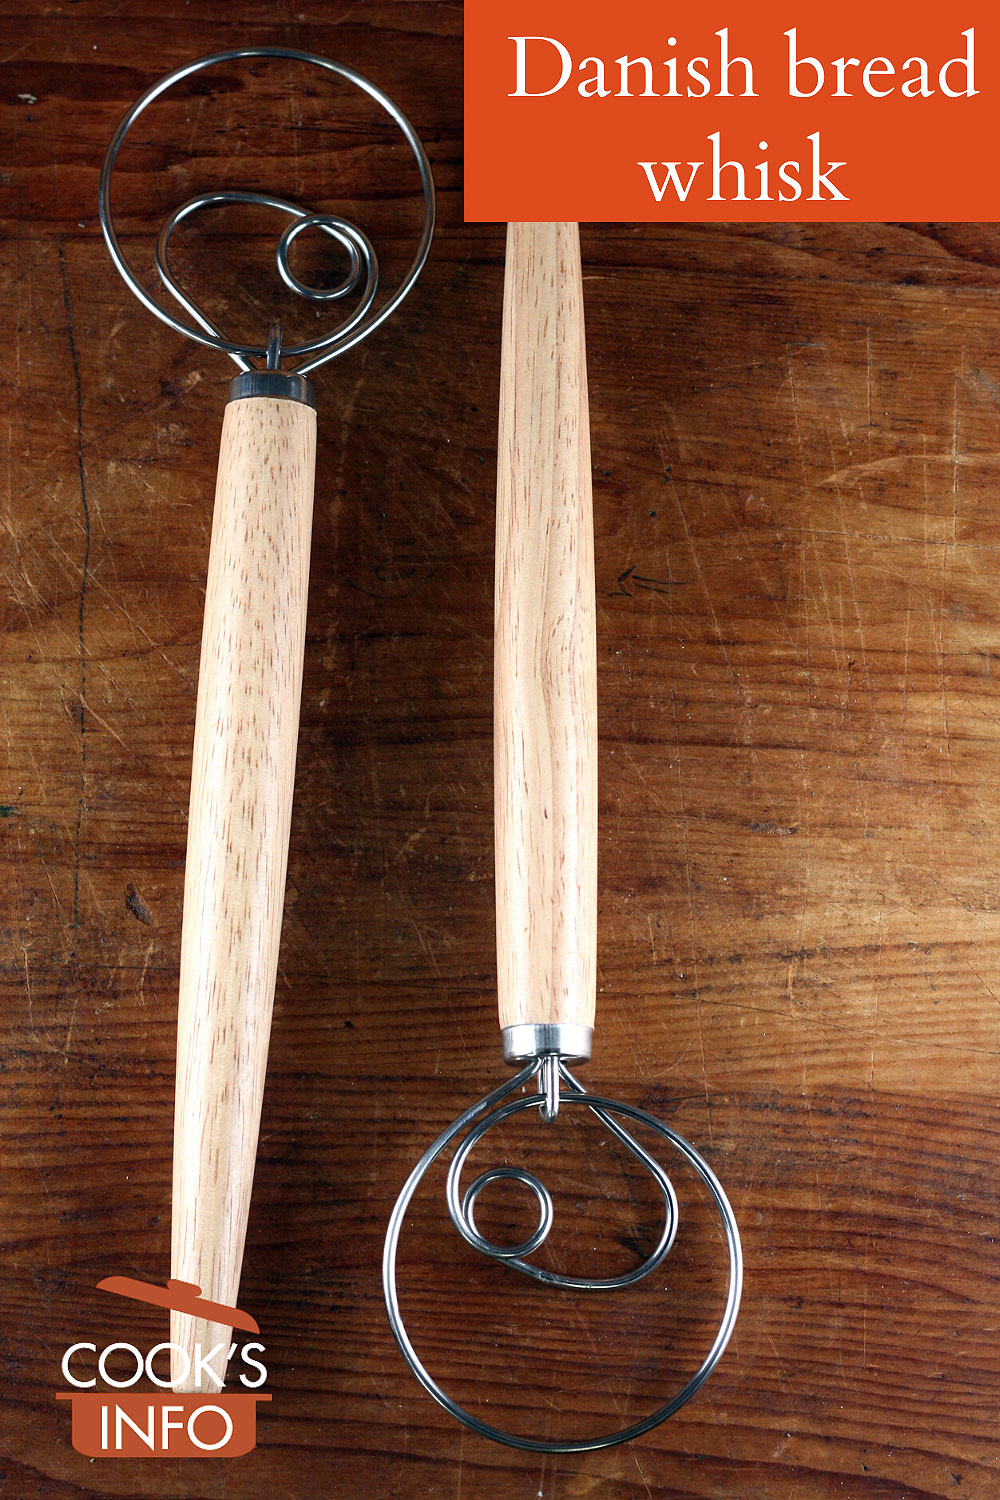 Danish bread whisk